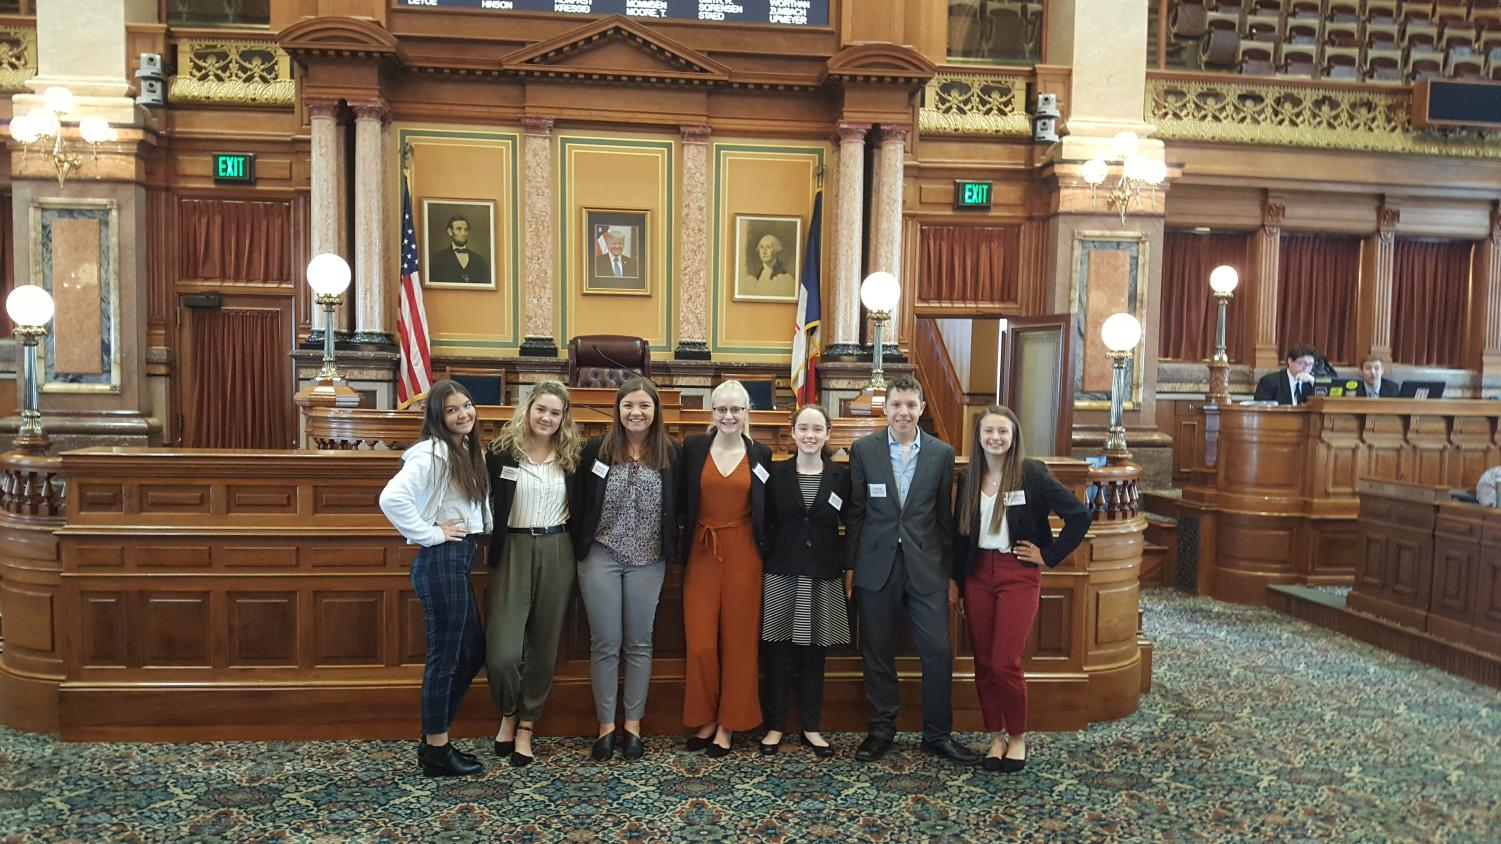 Model UN Delegates Bella Nekvinda (12), Tressa Weimerskitch (12), Alyssa Ernst (11), Emma Kalb (11), Madilyn Deifell (9), AJ Murdah (9), and Jillian Manternach (11) gather for a photo at the House Chamber of the Iowa Capitol Building.